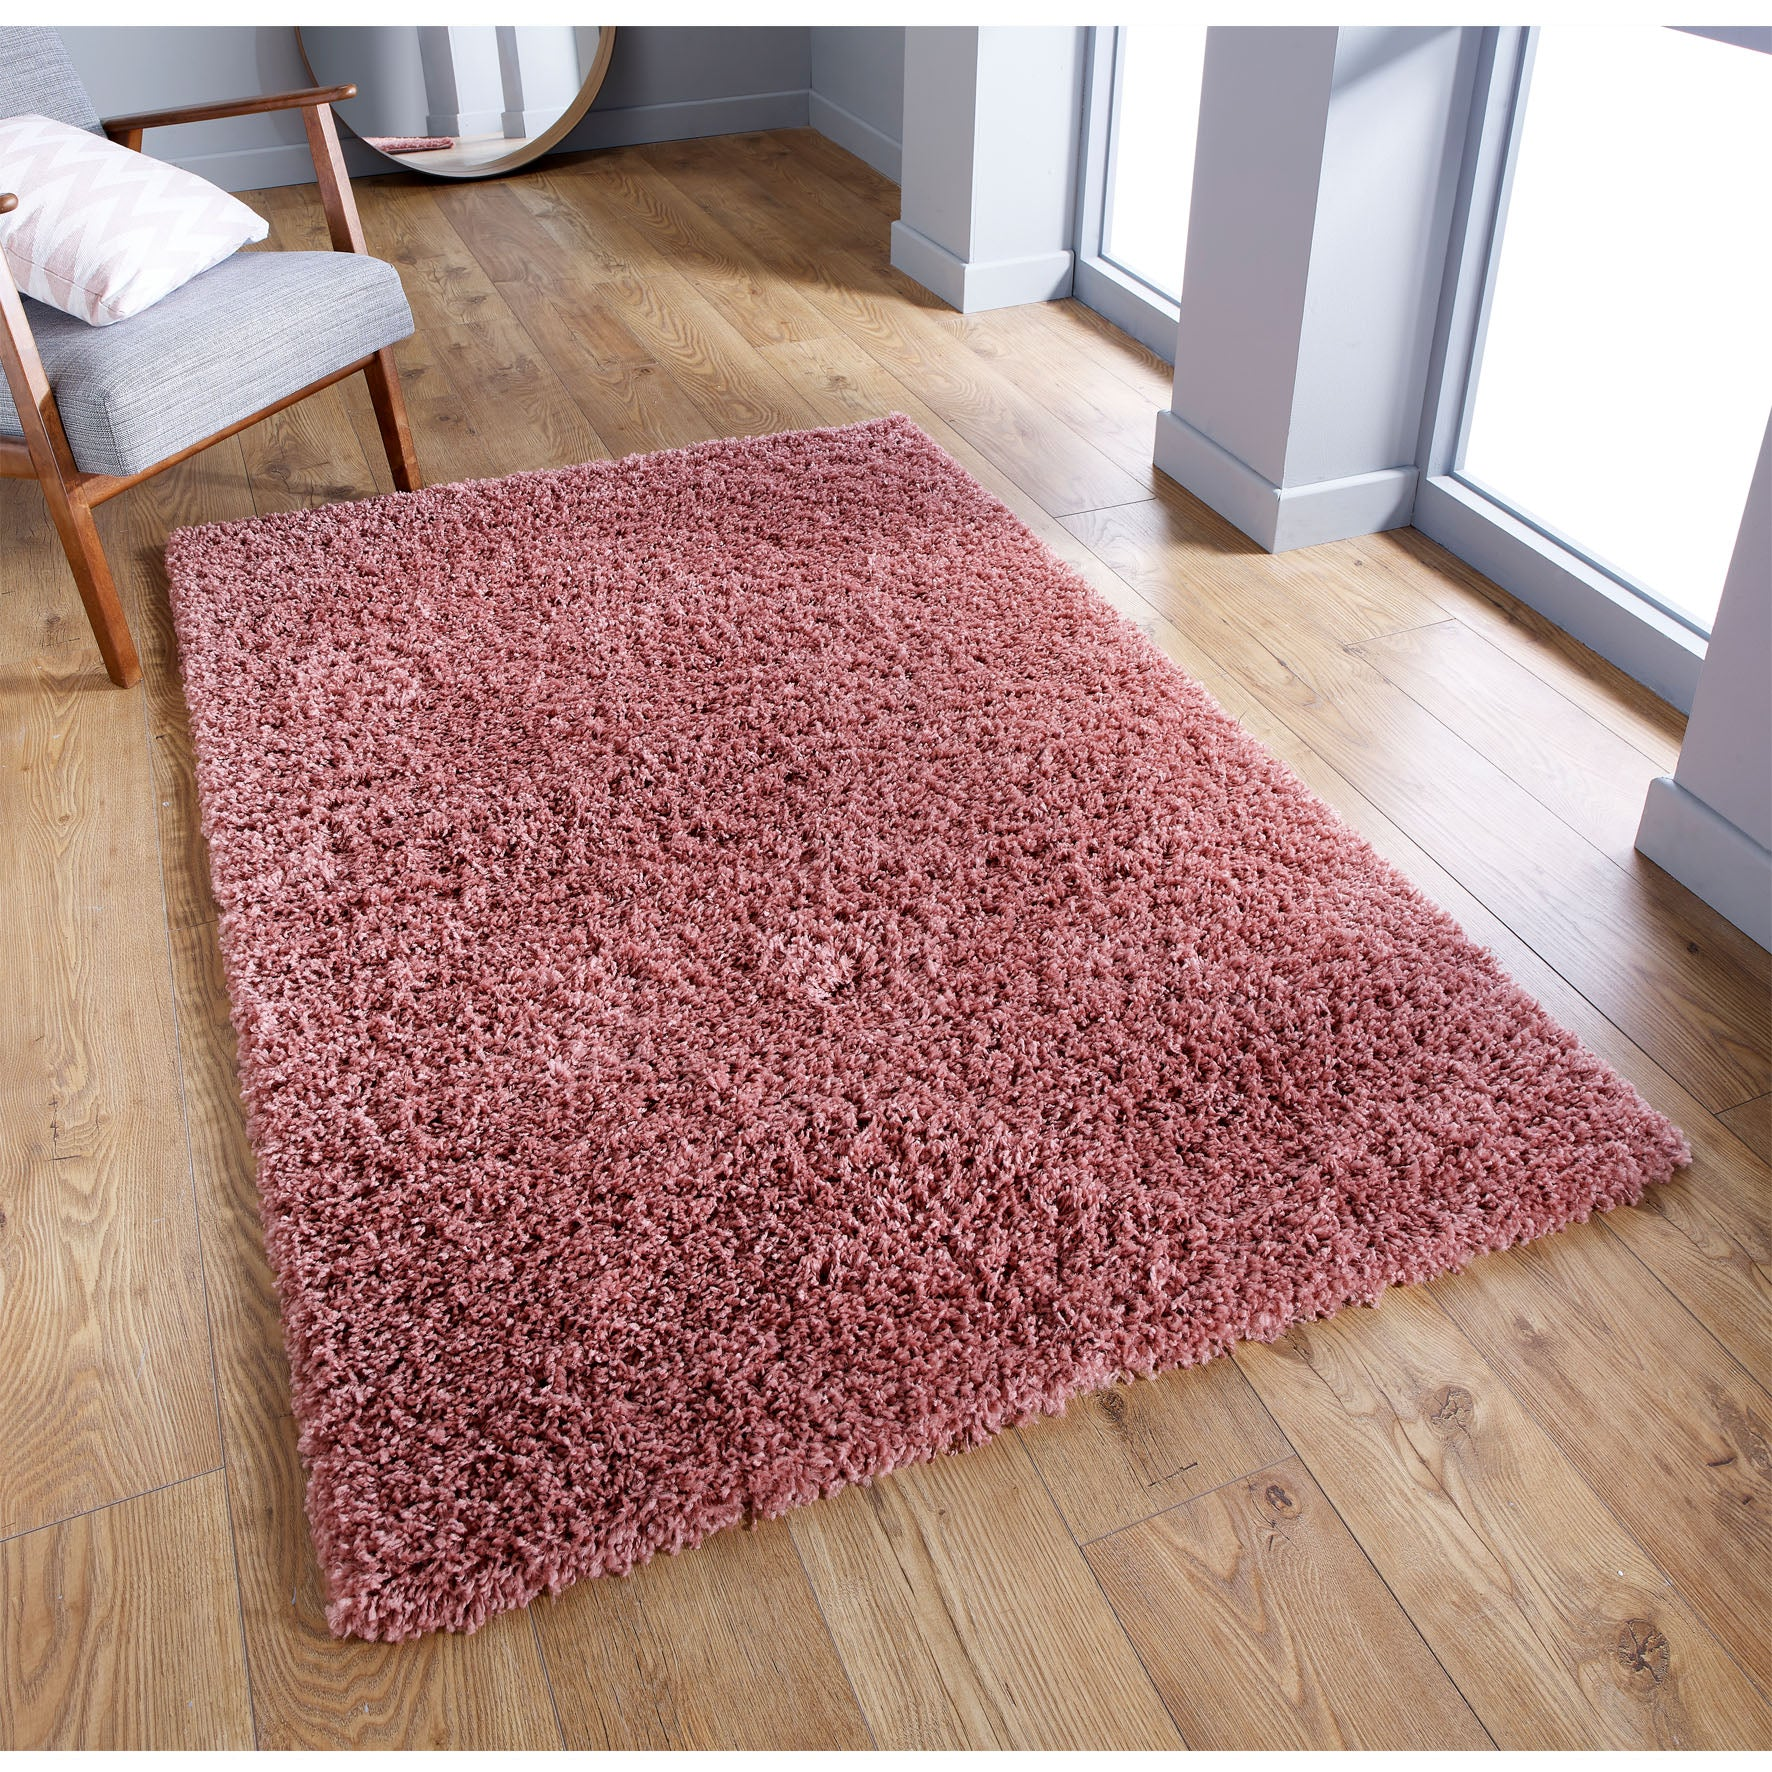 Pink rug next to chair in living room on wooden floor